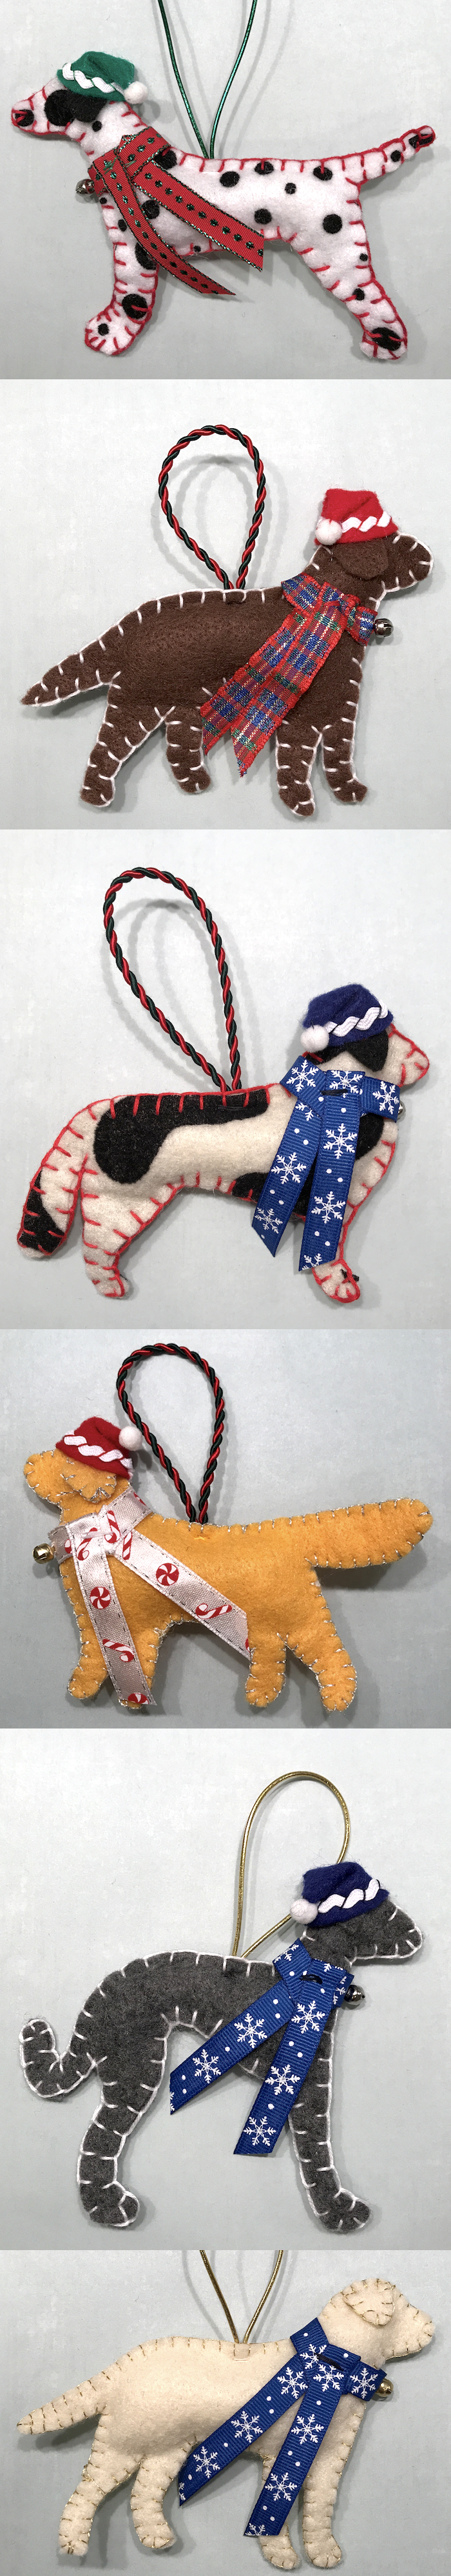 Handmade Felt Dog Ornaments for the Holidays